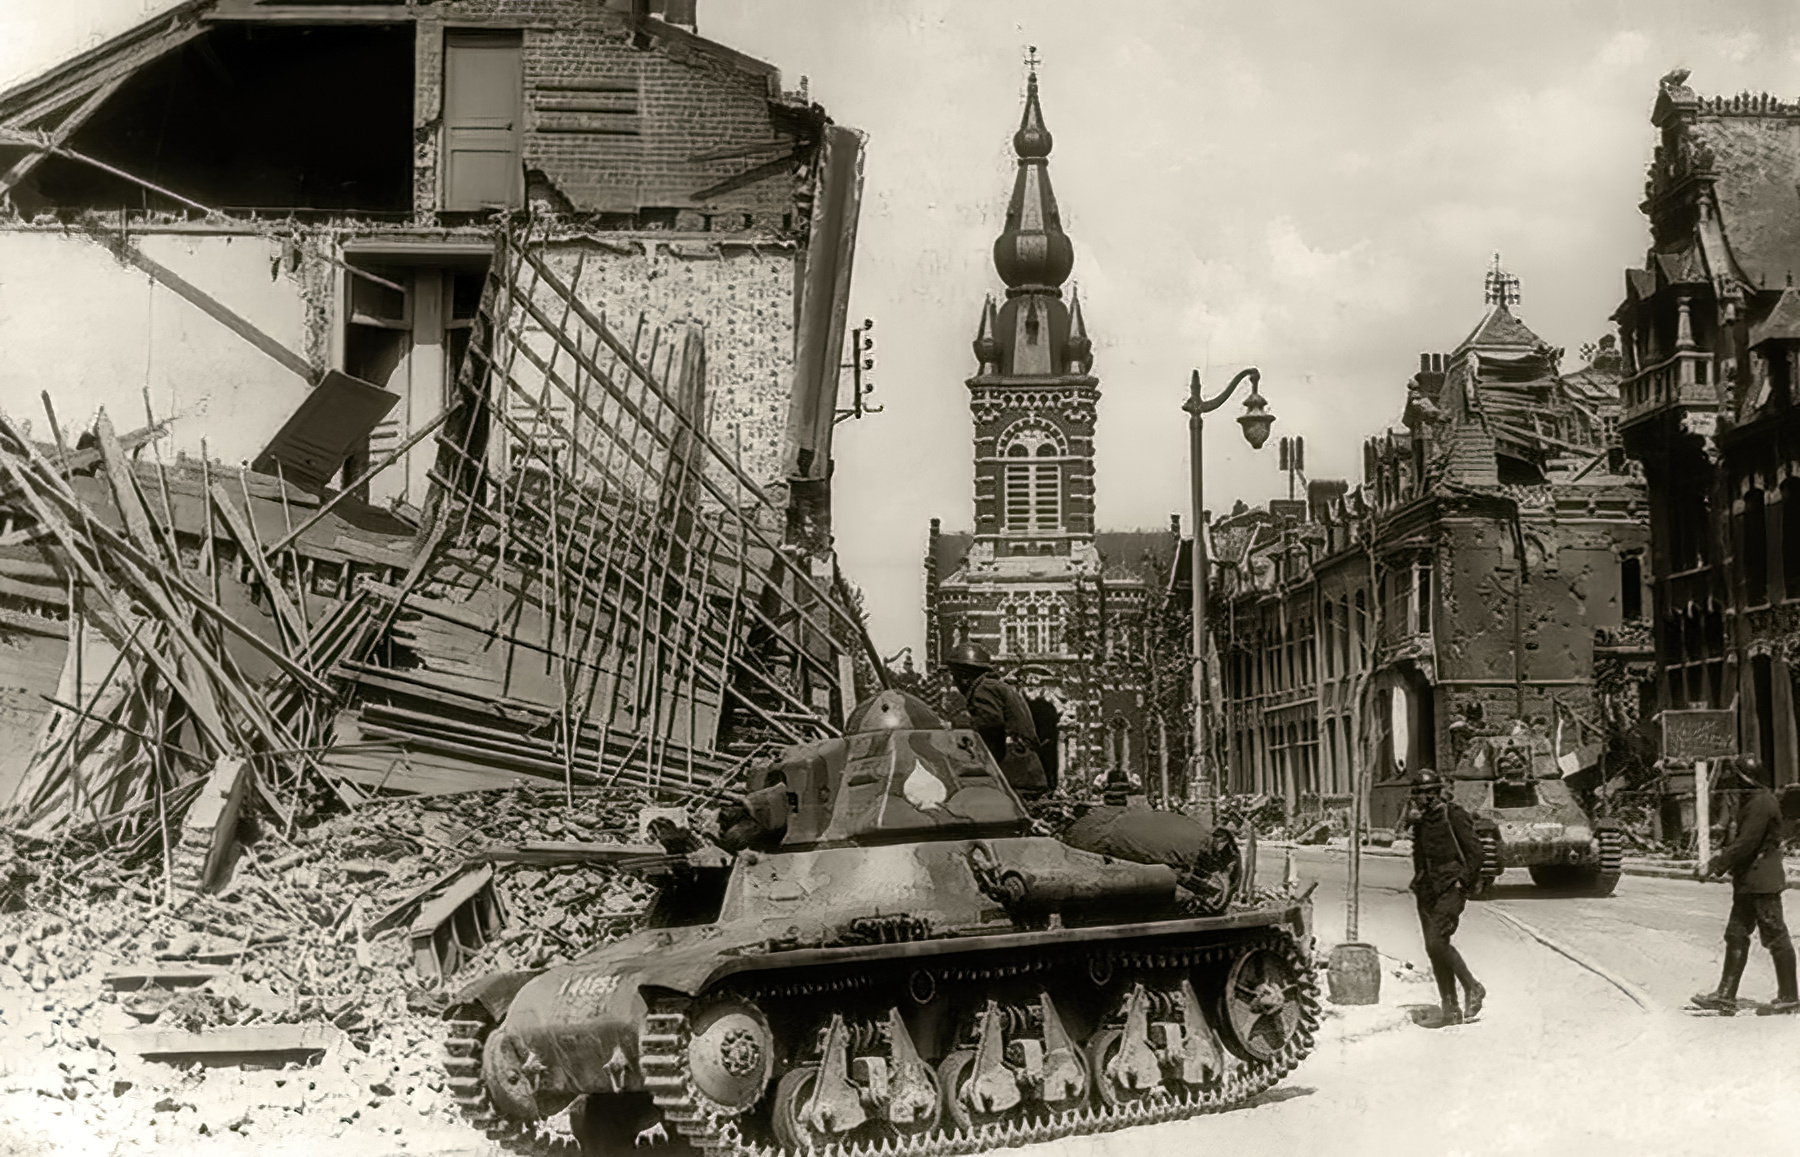 French Army Hotchkiss H35 defending a French town France 1940 ebay 01